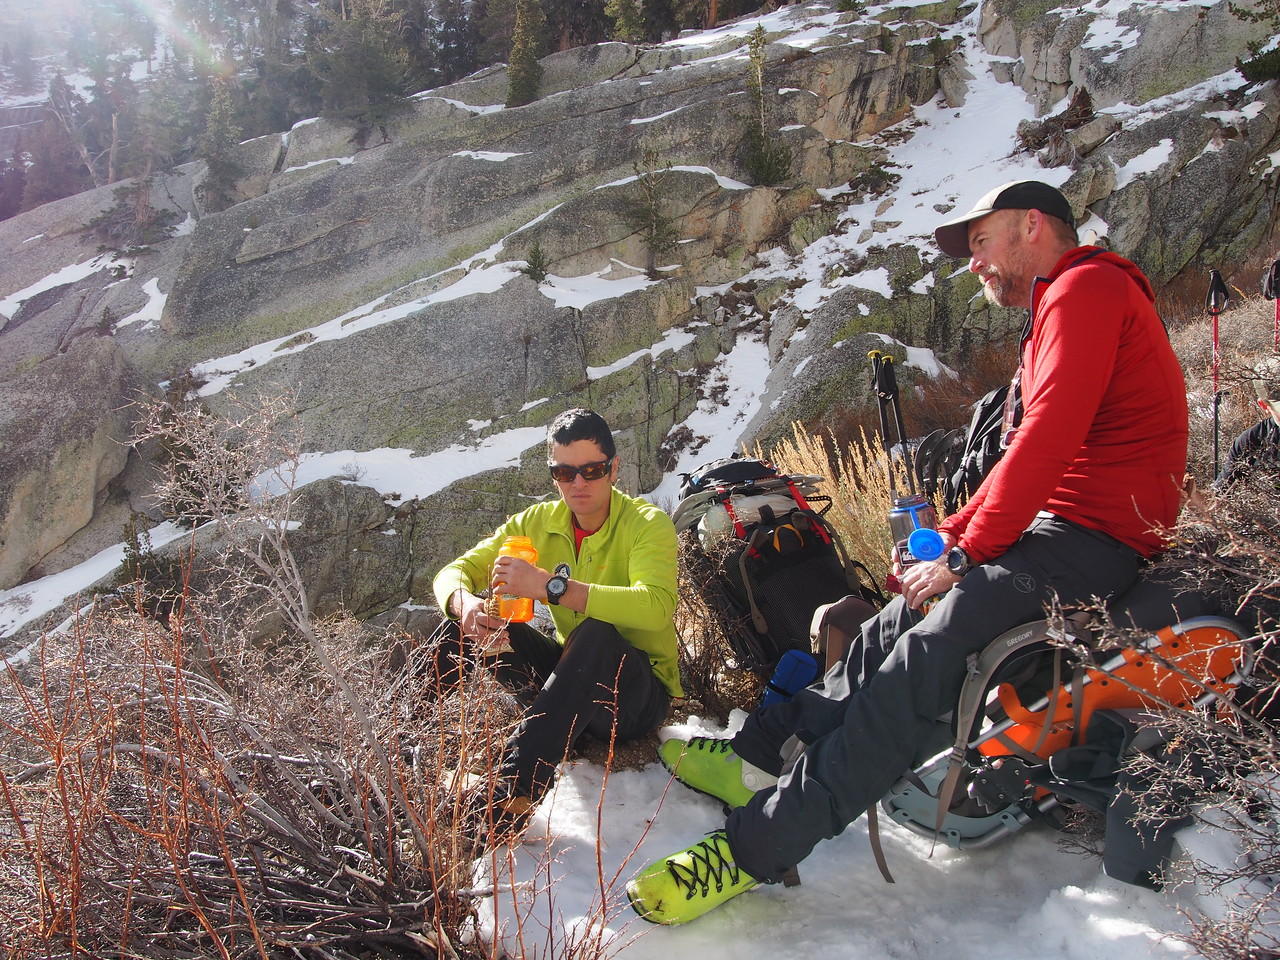 2015 Sierra Winter Mountaineering Mike McBride